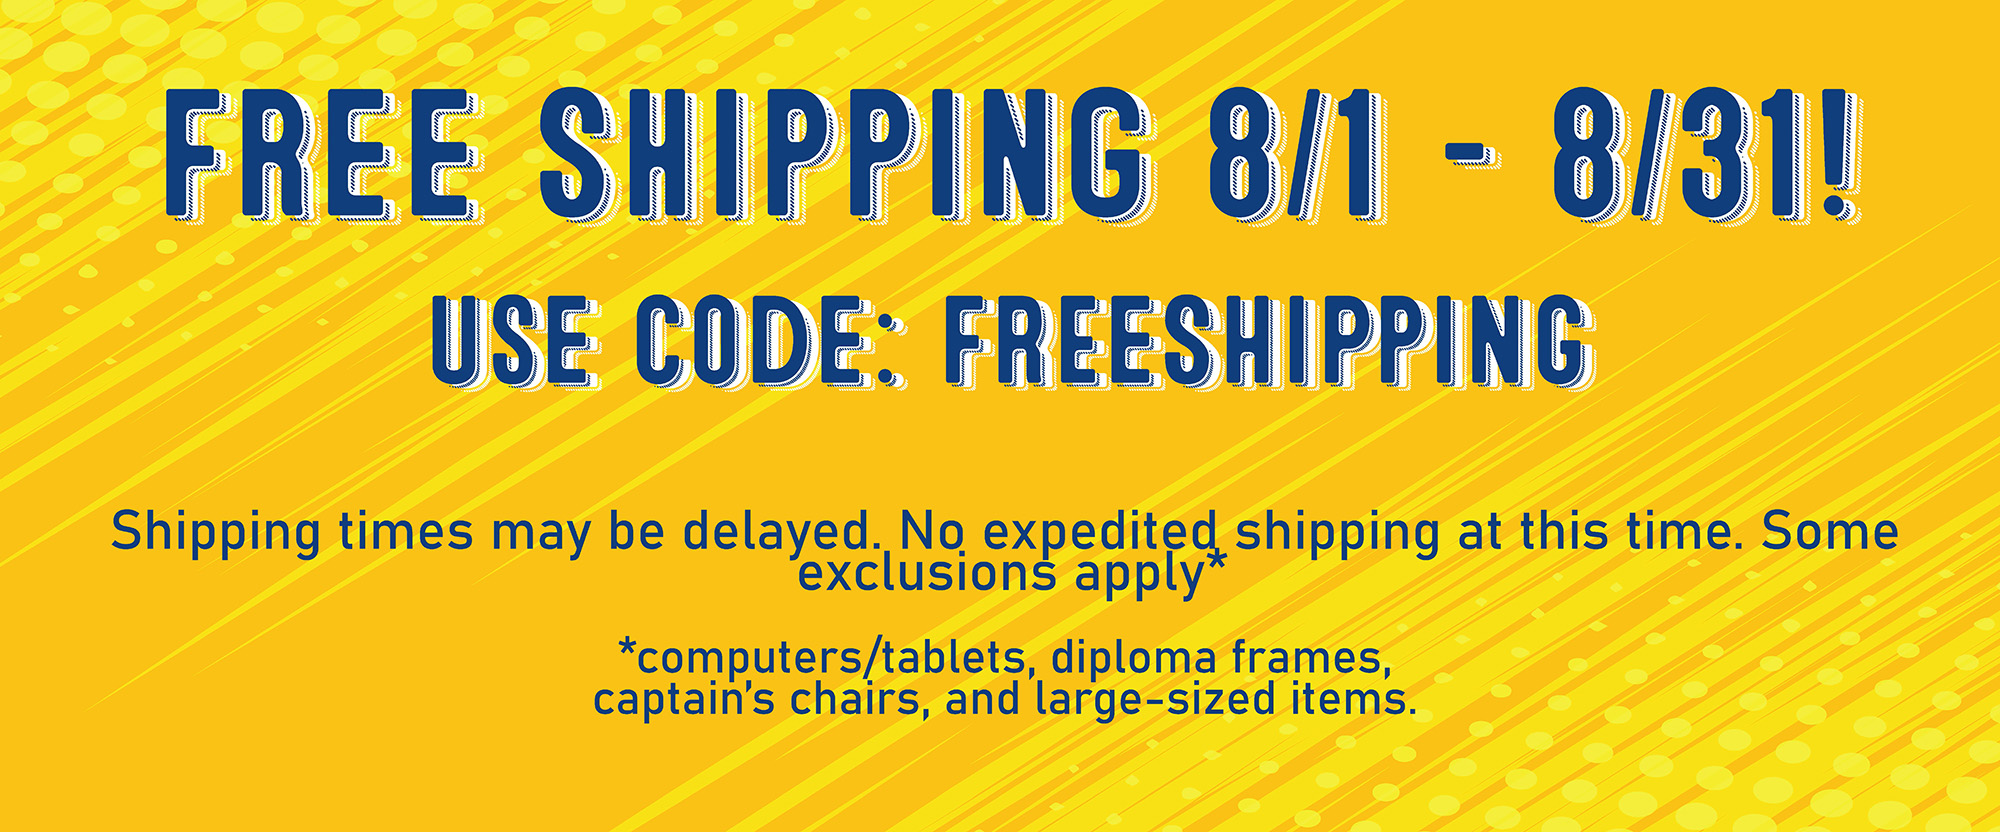 free shipping in August